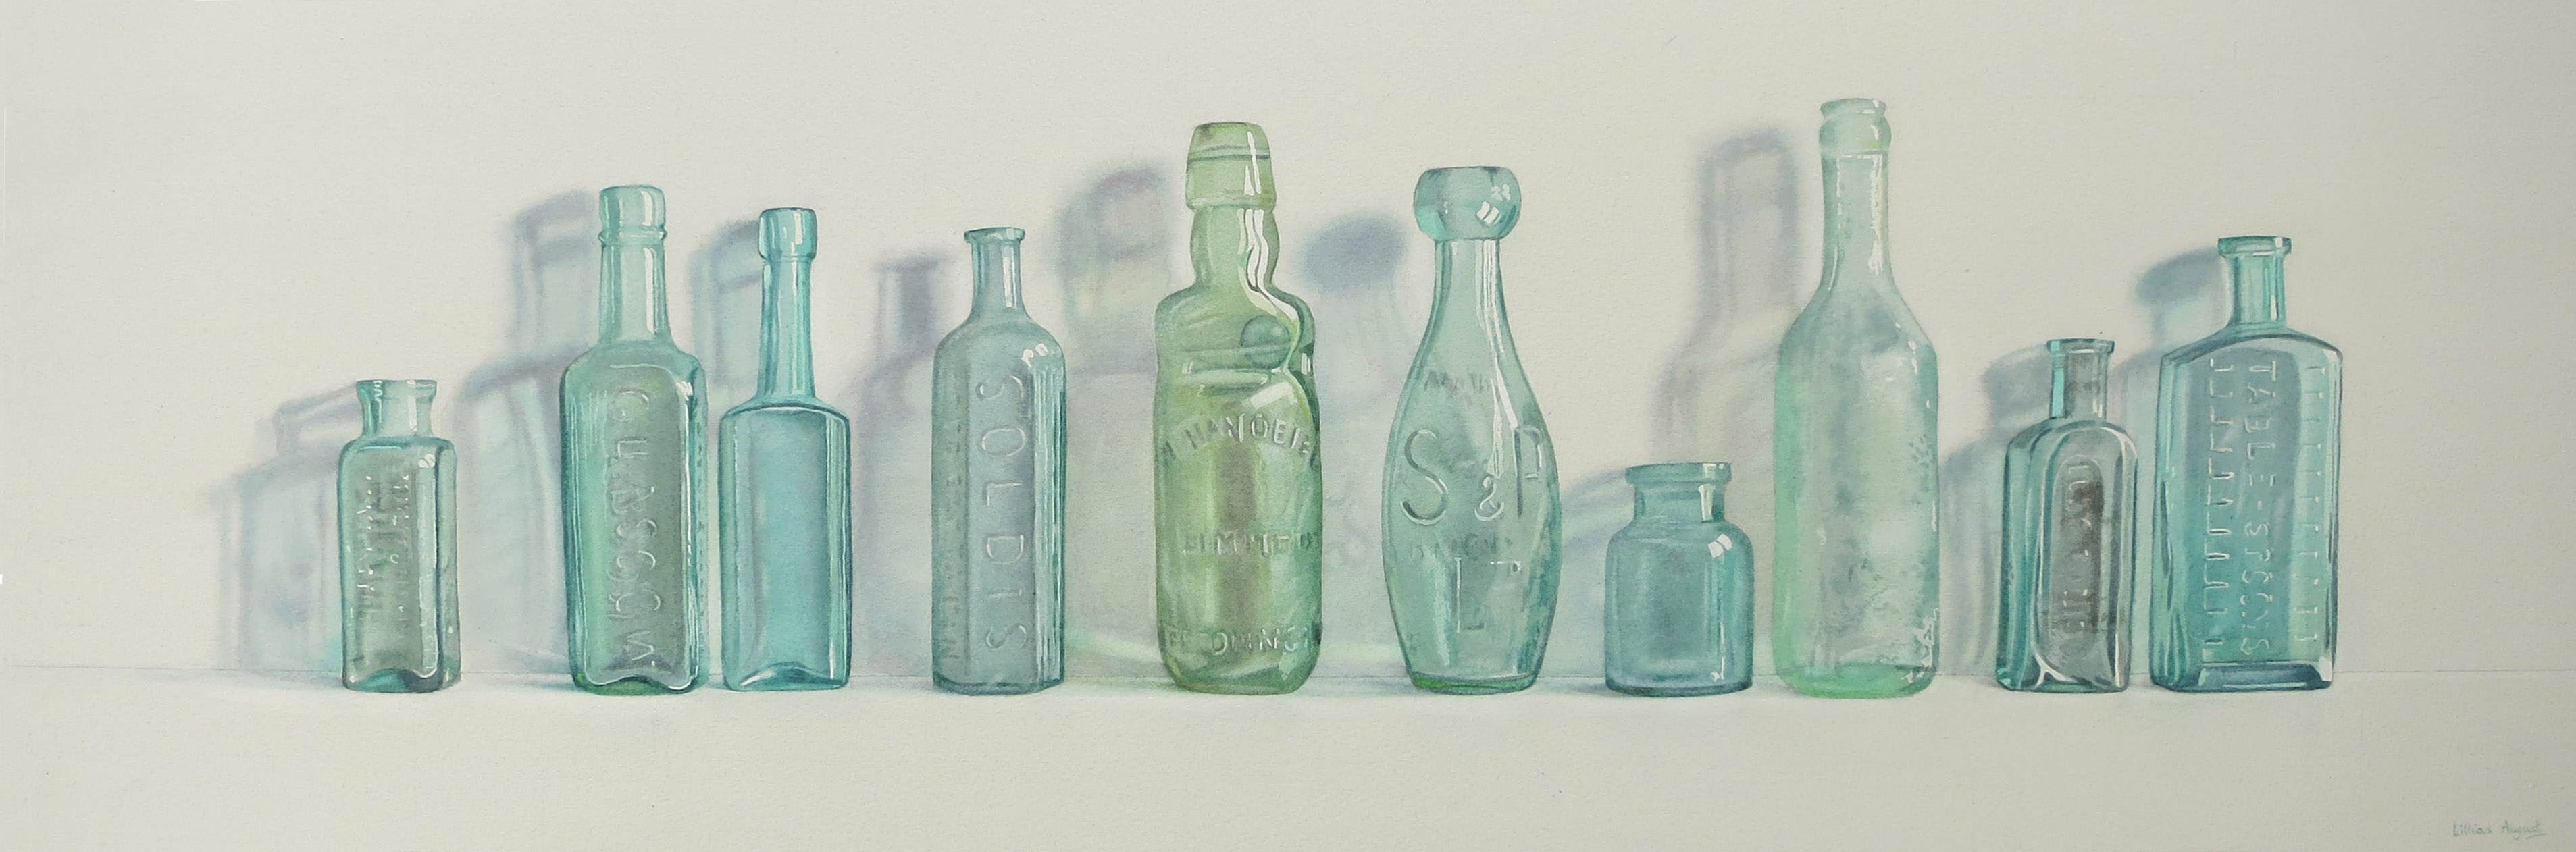 Ten green bottles 30 x 89cm Watercolour by Lillias August ©